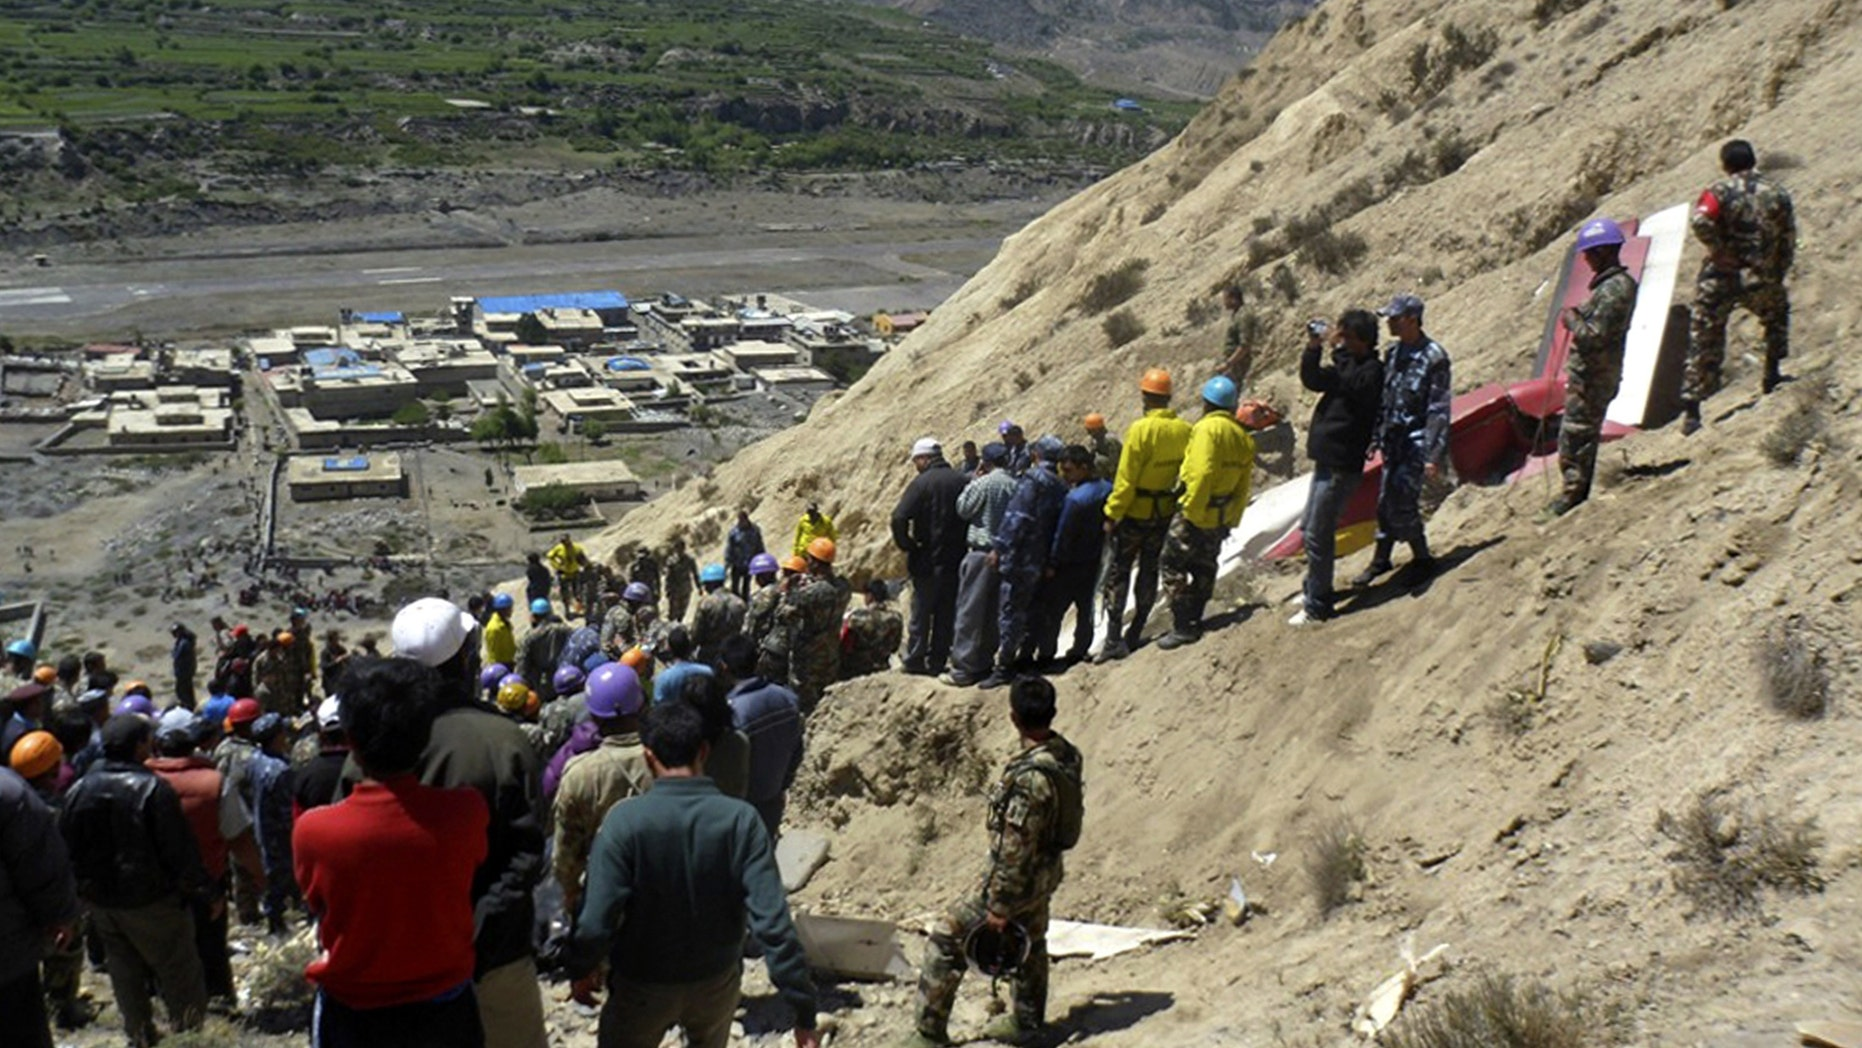 May 14: Nepalese rescue workers and officials inspect the site of a plane crash near Jomsom, 125 miles northwest of the capital, Katmandu.